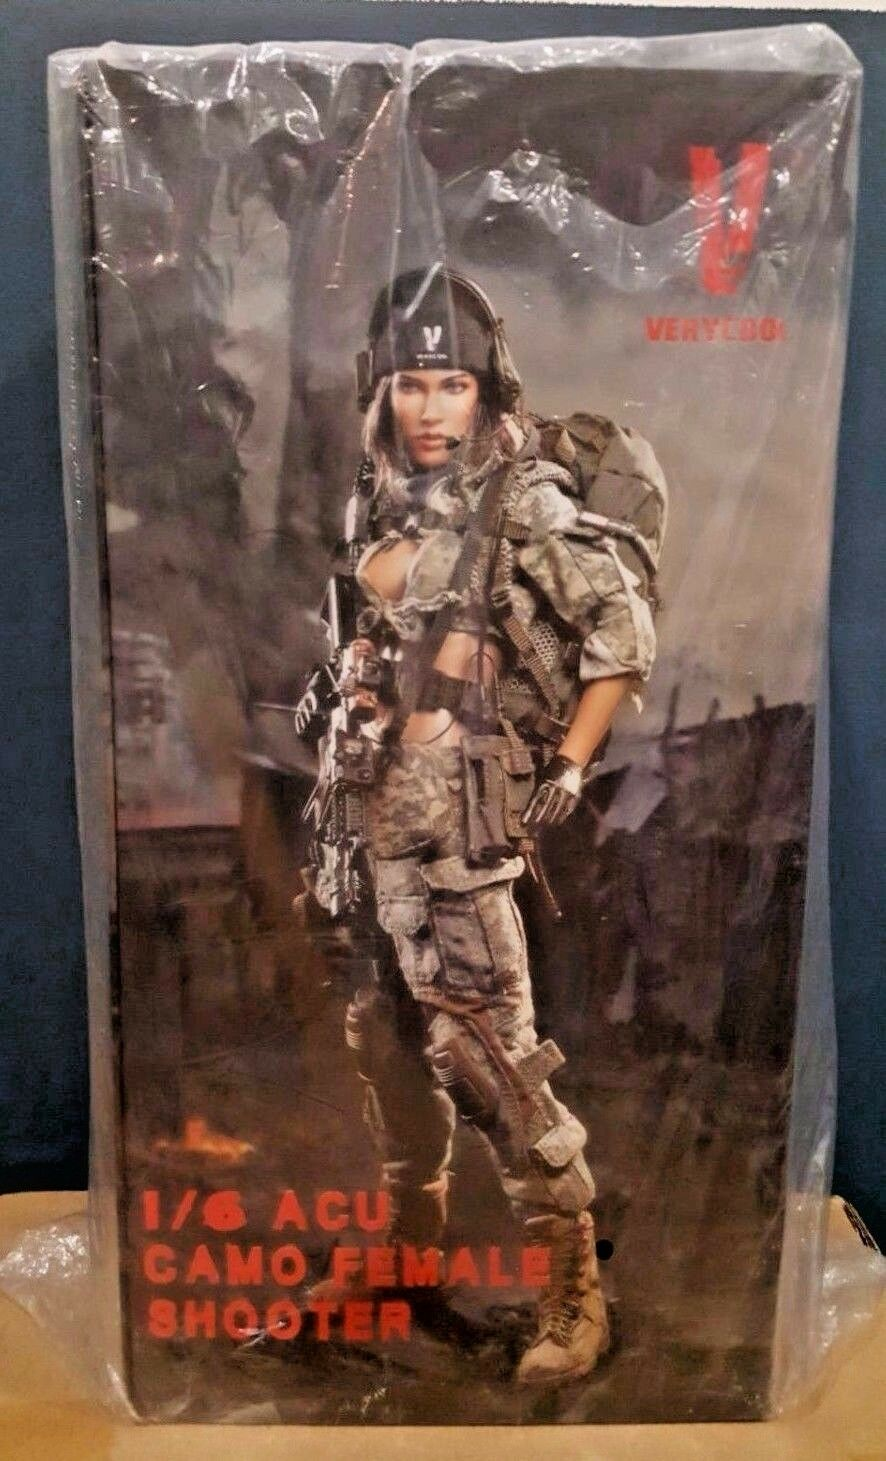 1 6 Verycool VCF2026 ACU Camo Woman Shooter Female Action Figure New Model